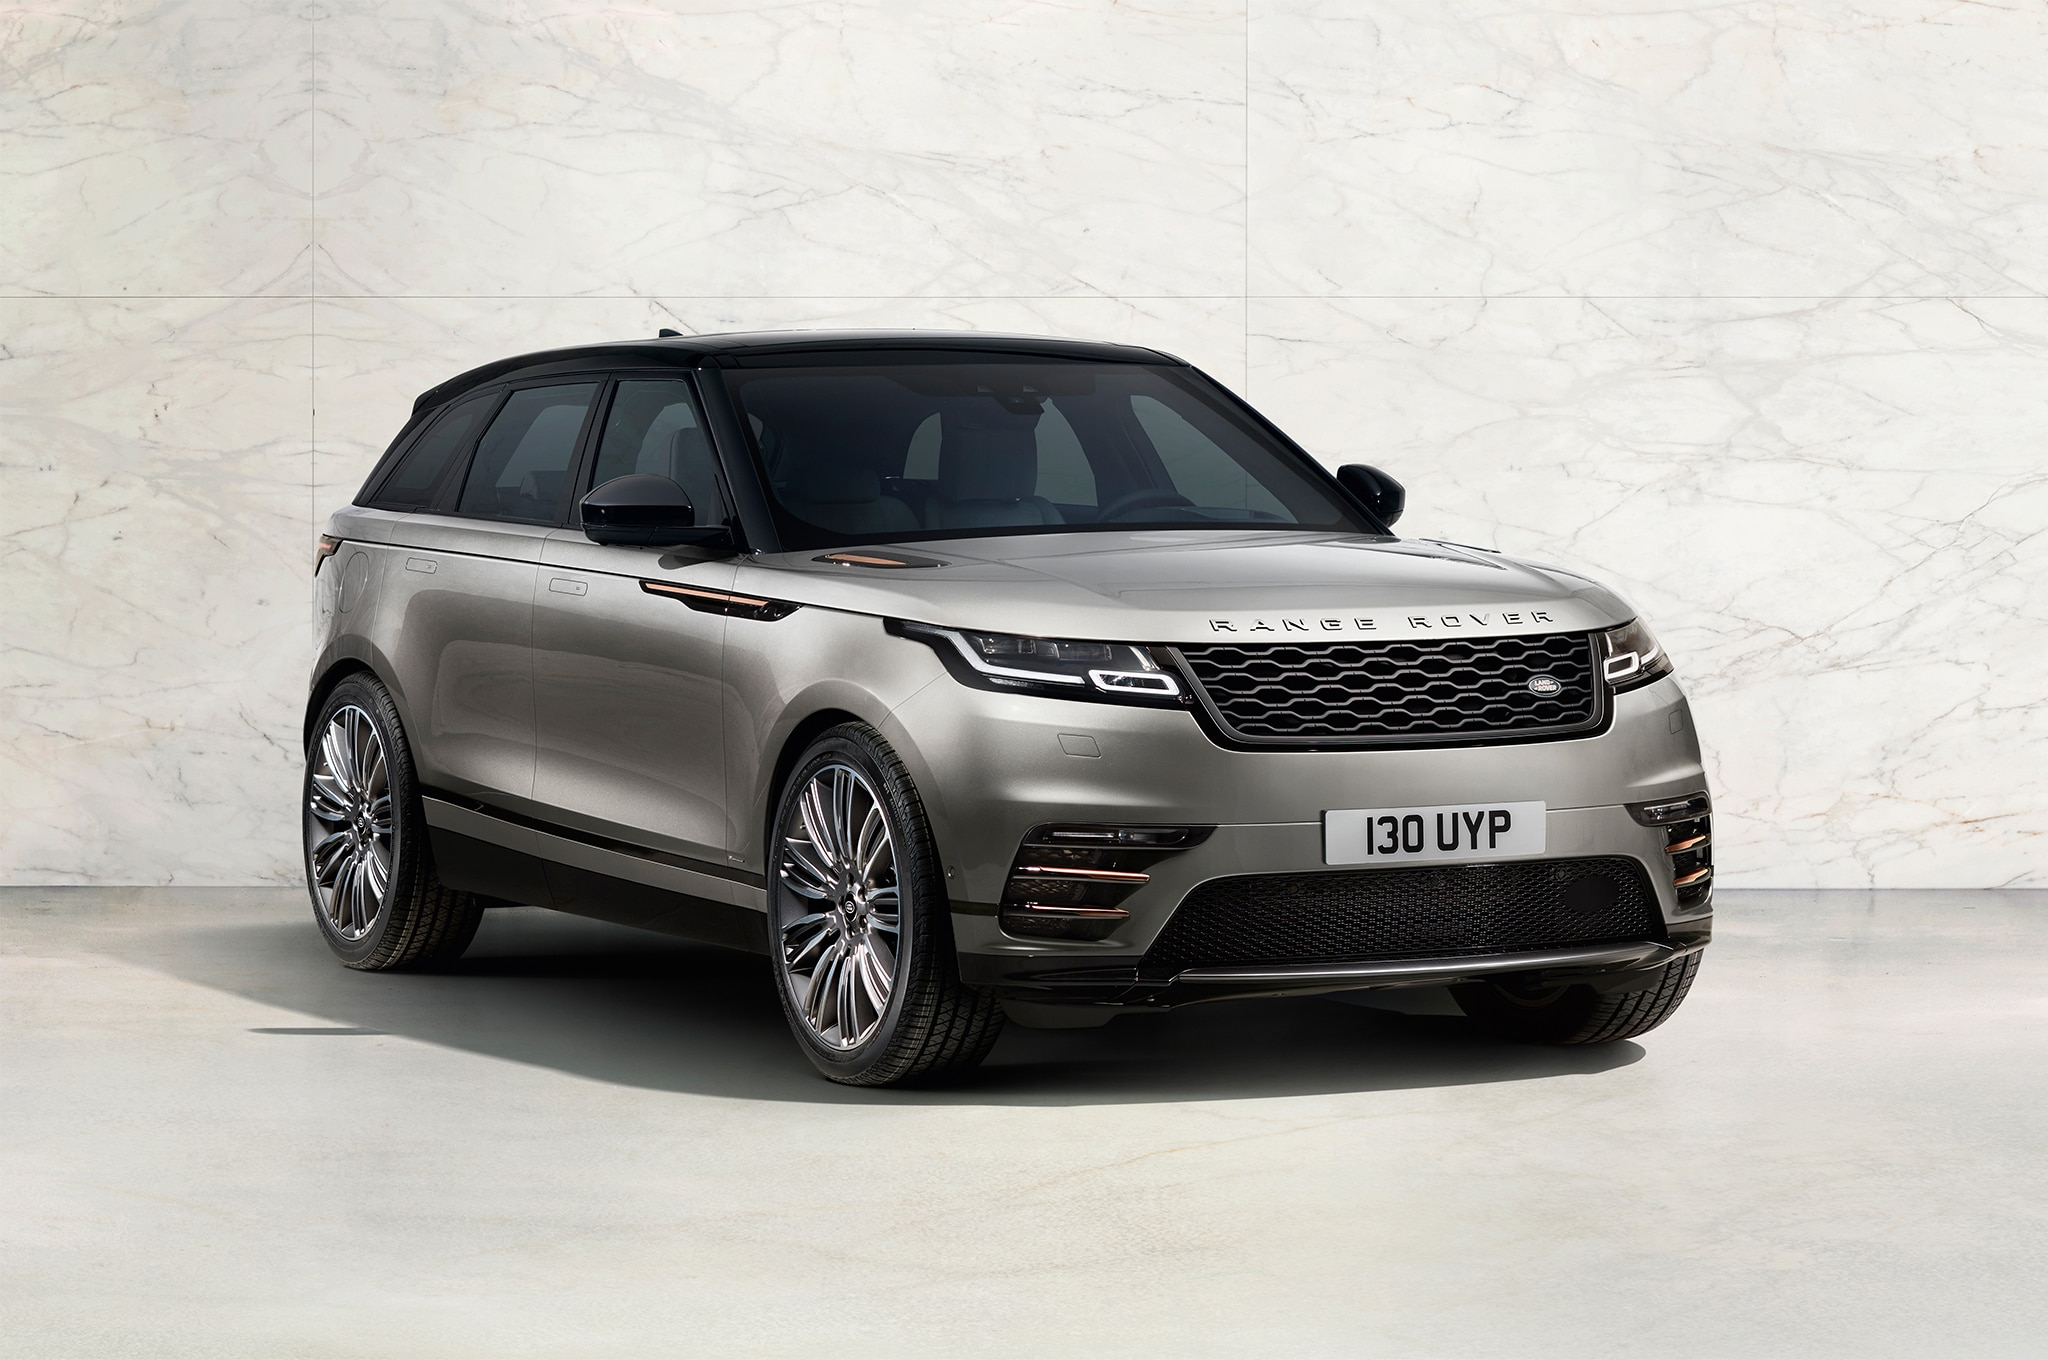 2018 Land Rover Range Rover Velar Front Three Quarter 02